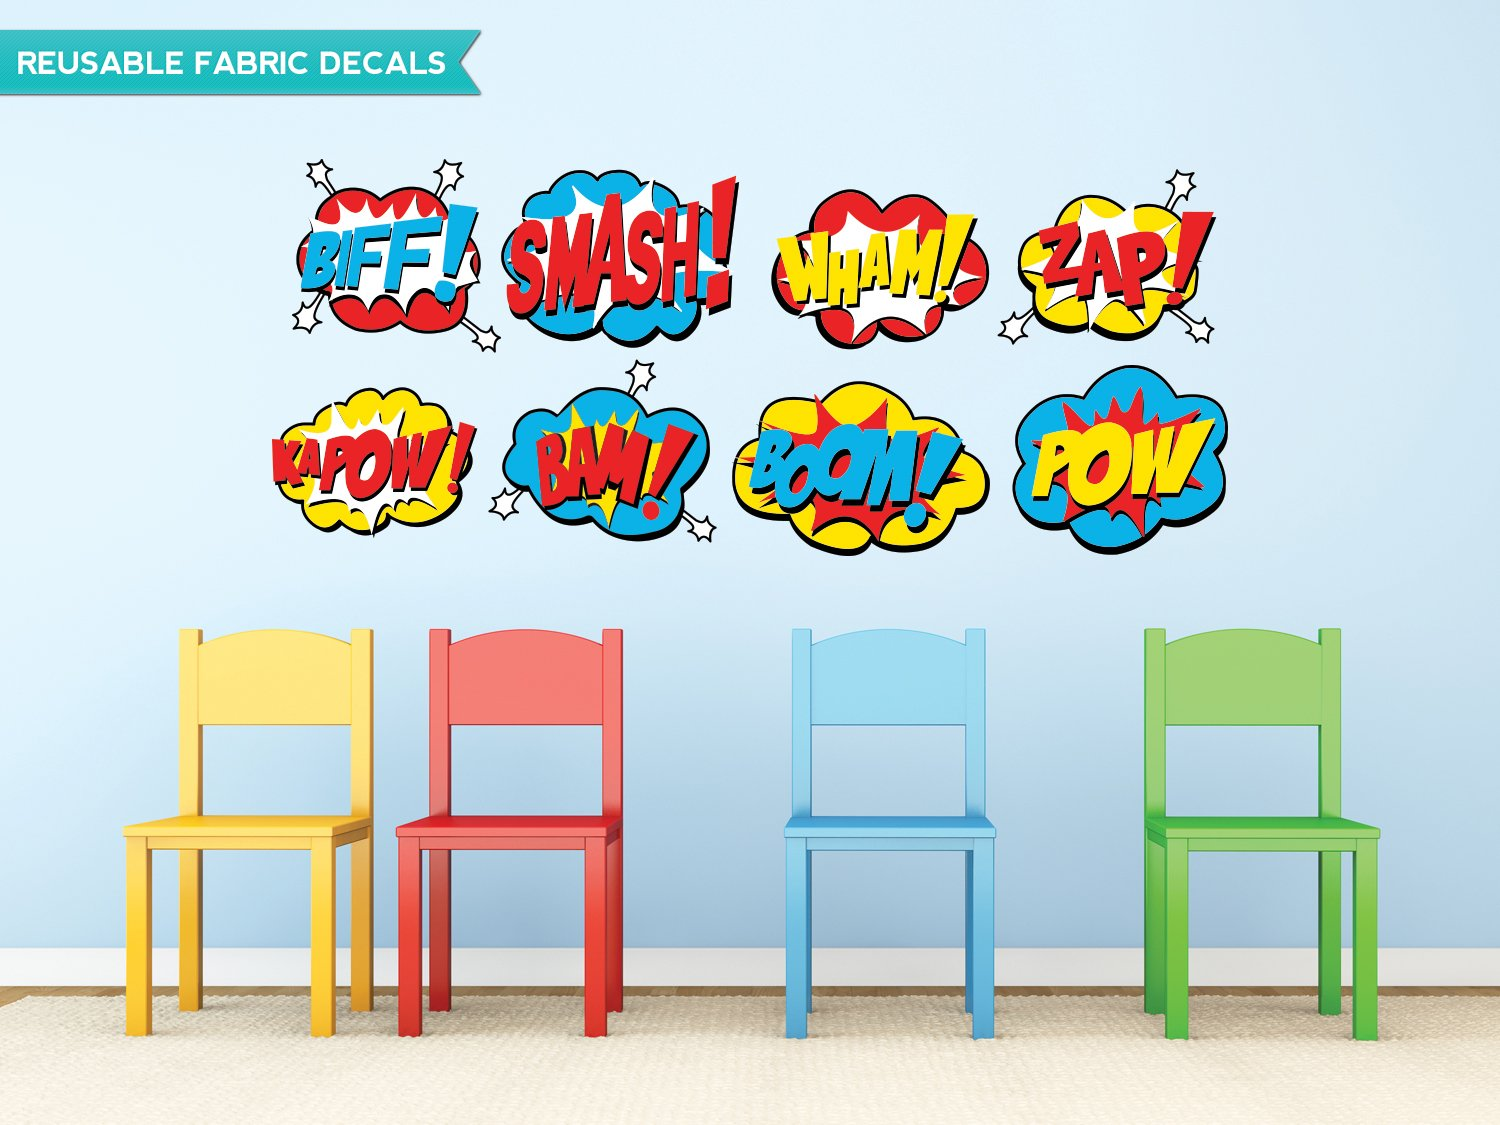 Sunny Decals Superhero Word Bursts Fabric Wall Decals, Large